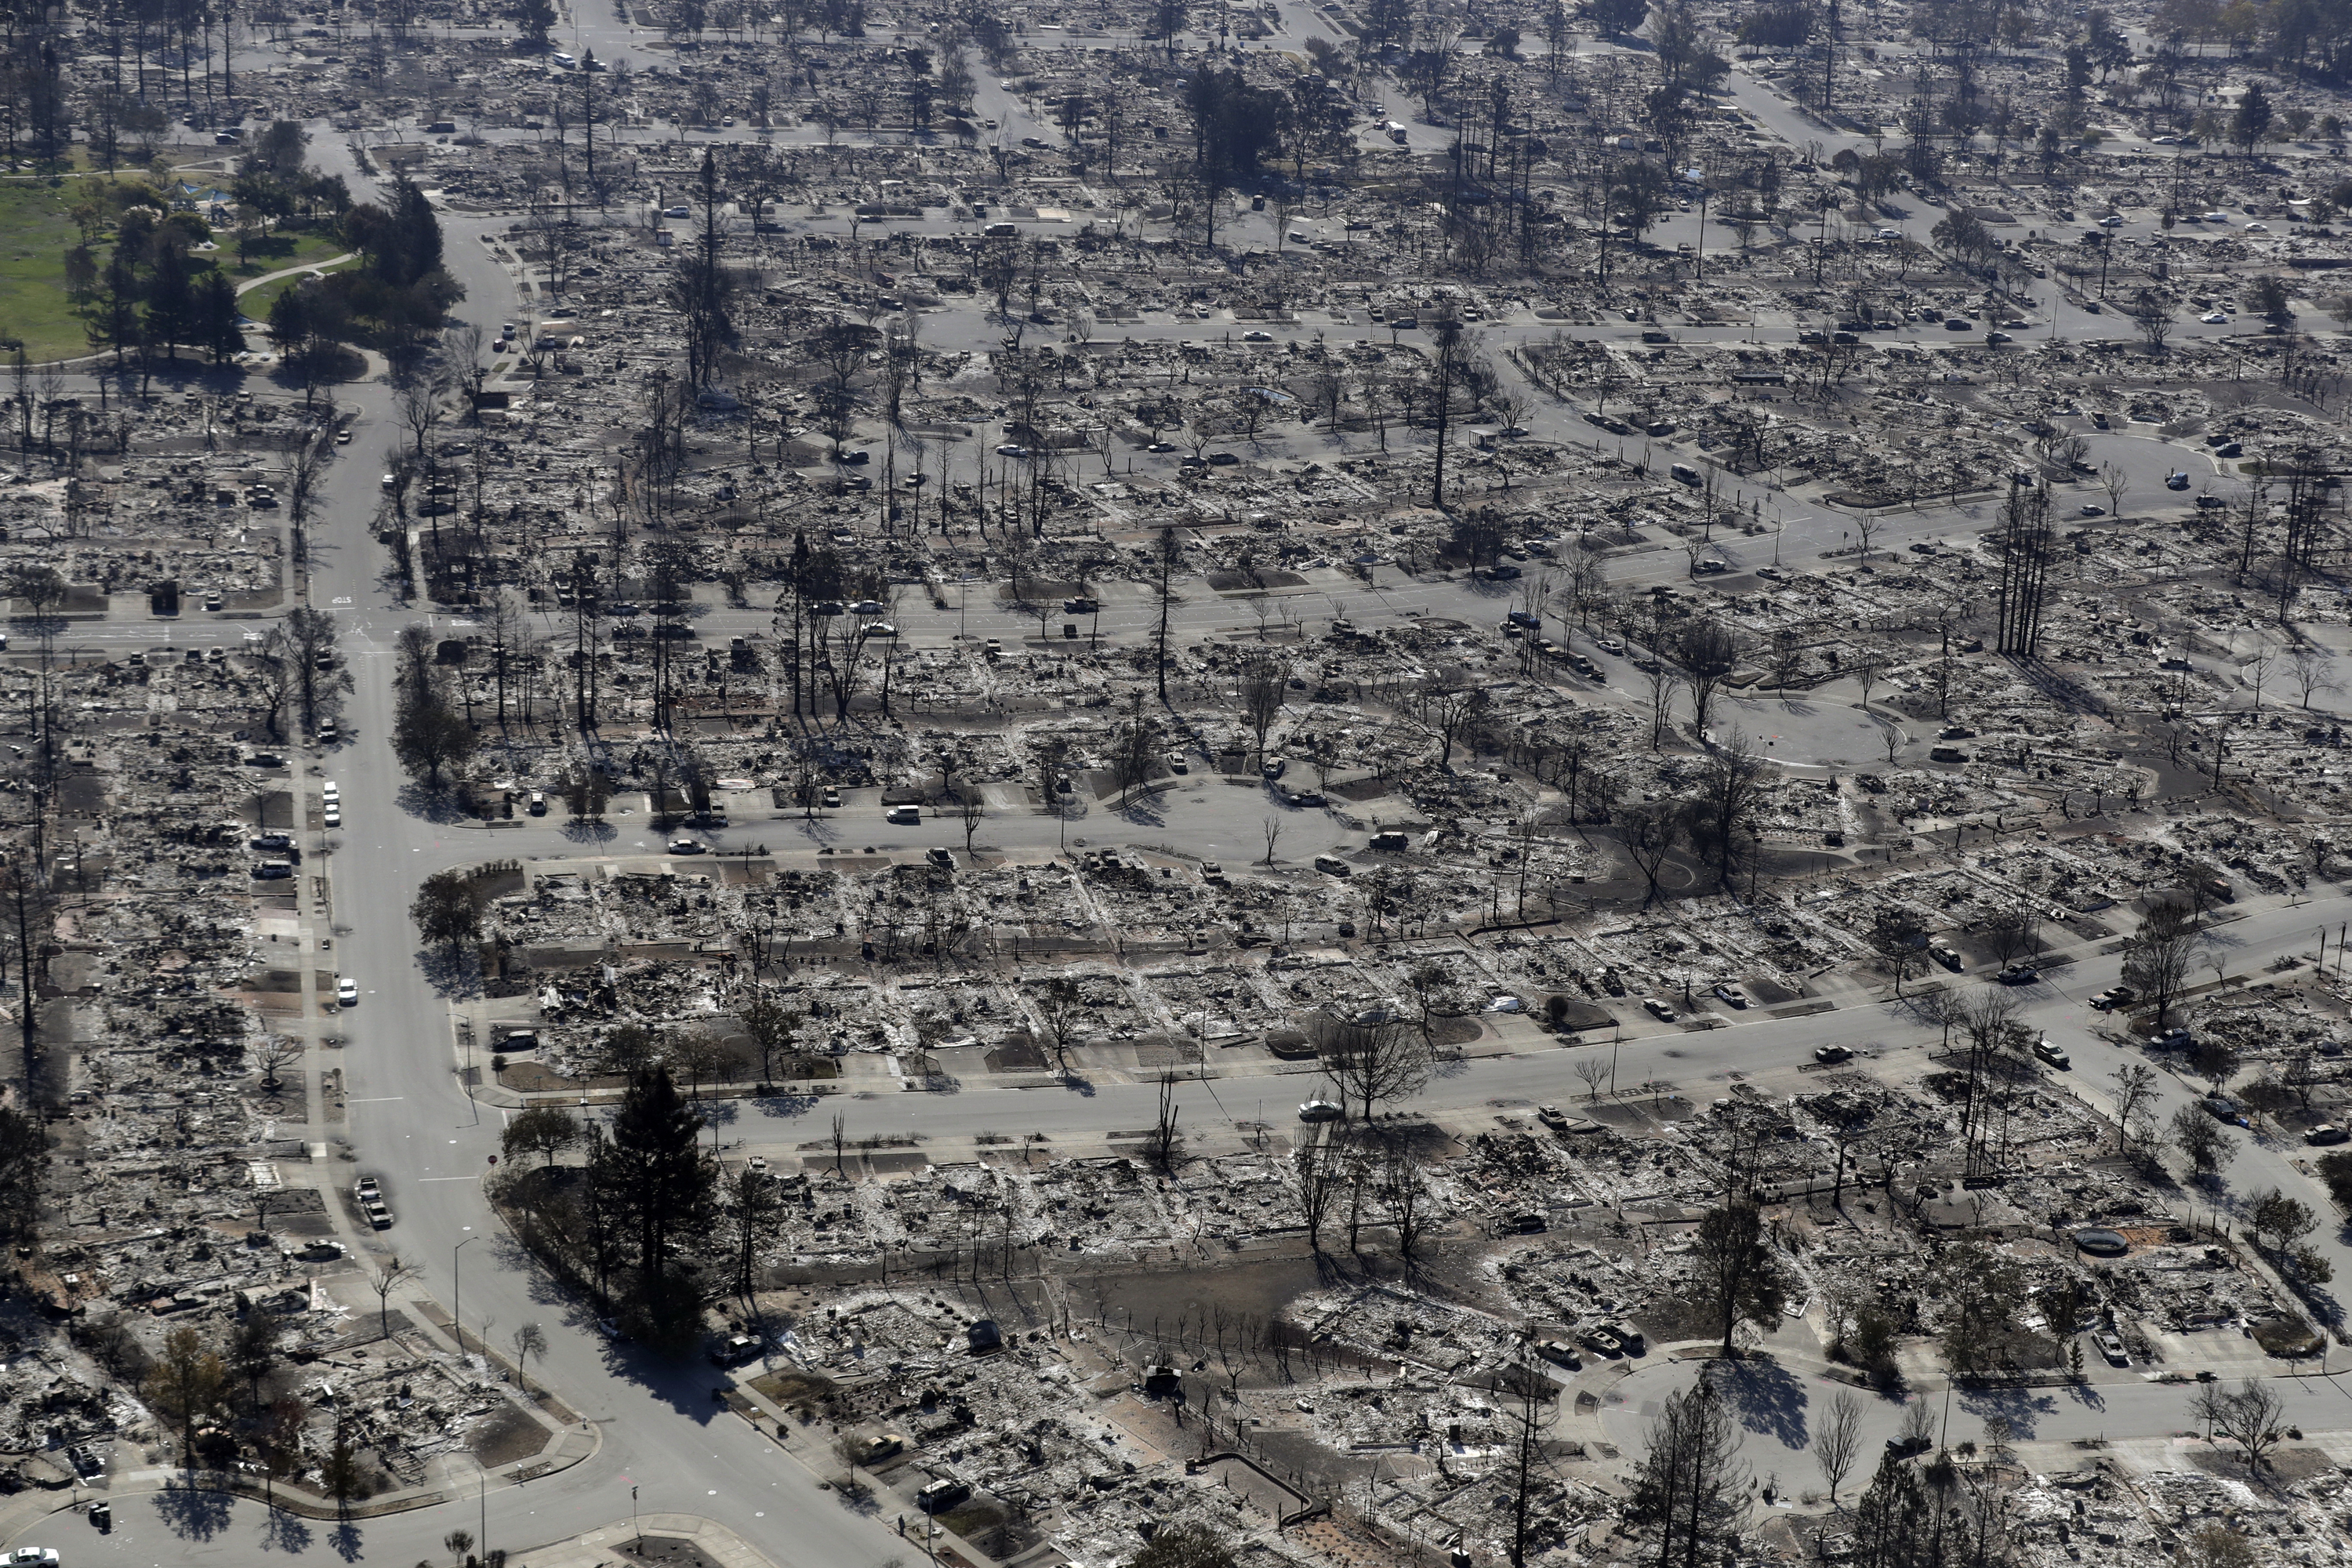 FILE - In this Oct. 14, 2017, file photo, an aerial view shows the devastation of the Coffey Park neighborhood after a wildfire swept through in Santa Rosa, Calif. California's insurance commissioner said Tuesday, Oct. 31, 2017 that losses from a series of destructive wildfires now exceed $3.3 billion.  (AP Photo/Marcio Jose Sanchez, File)